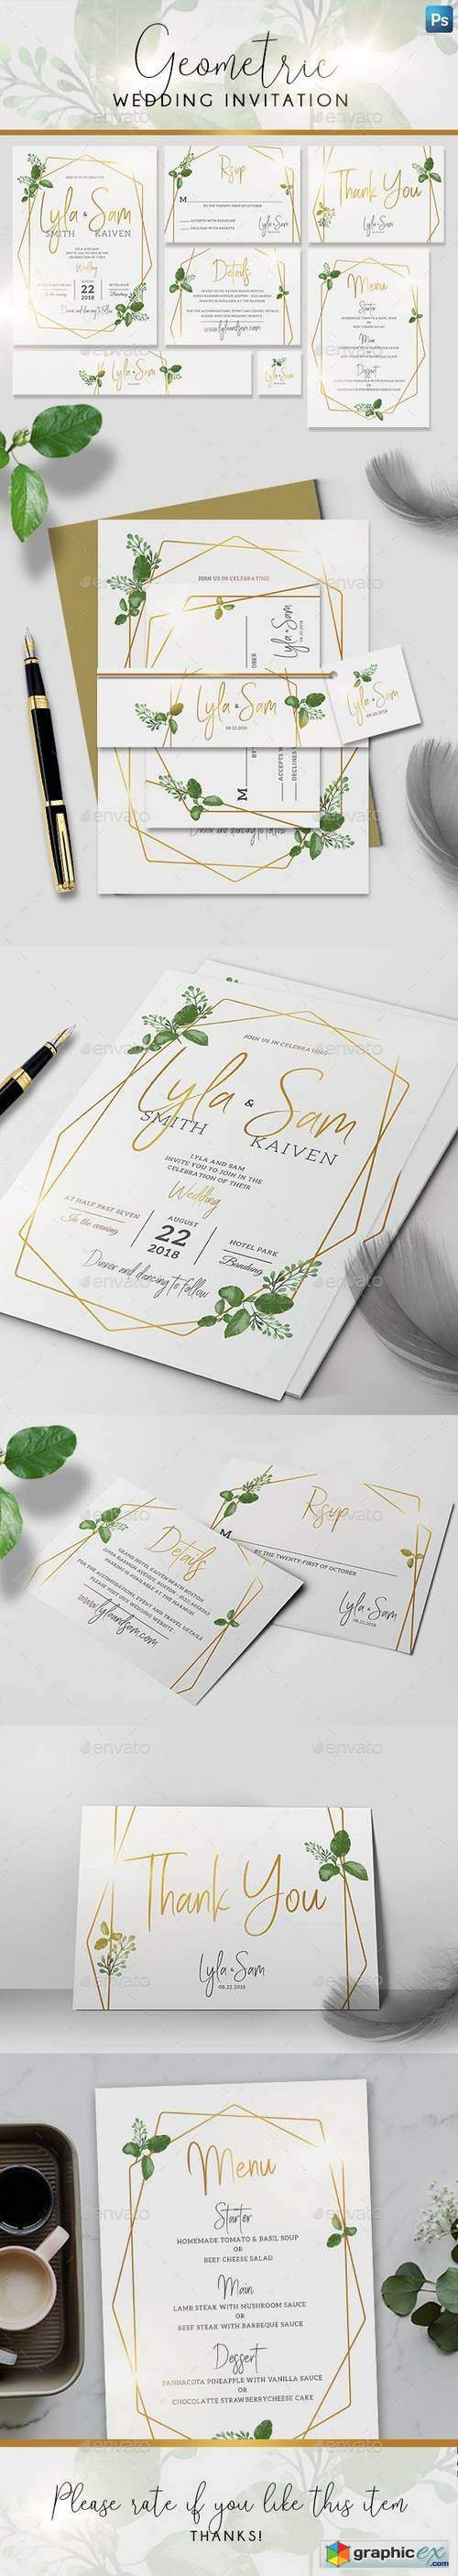 Geometric Wedding Invitation 21620415